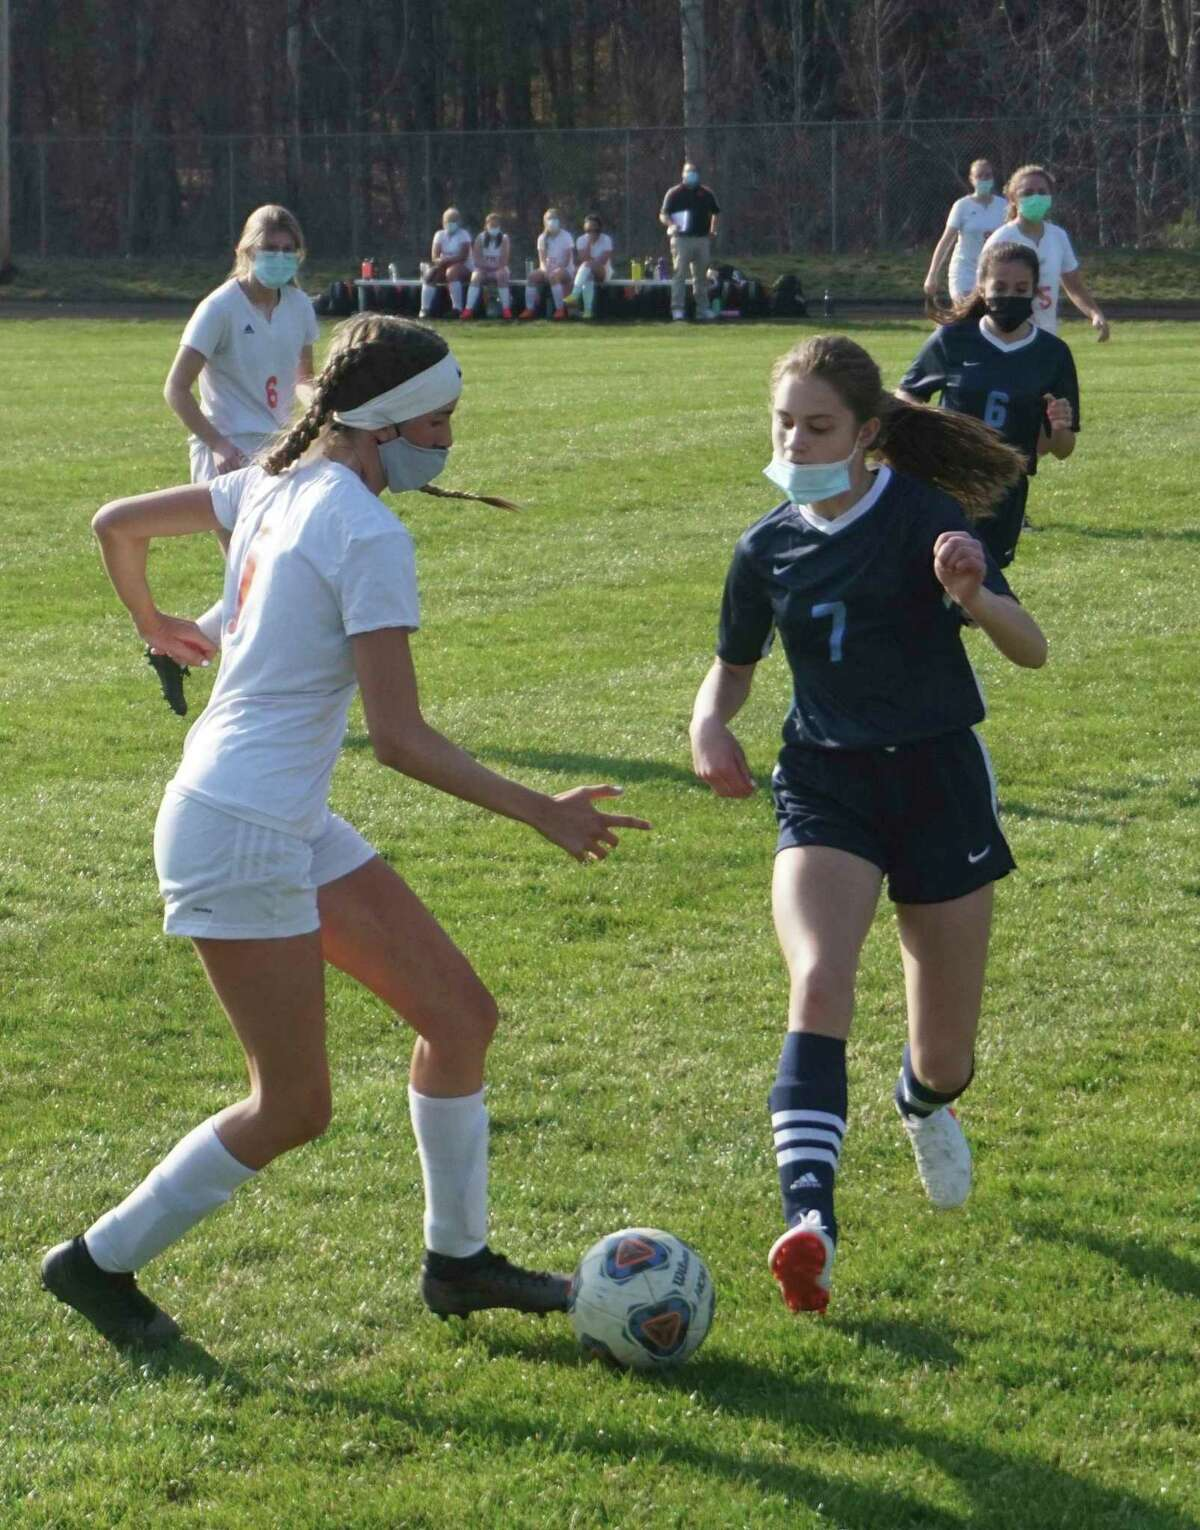 Crossroads freshman Kaitlin Buys (right) goes after the ball during CCA's loss to Cheboygan on Tuesday evening. (Pioneer photo/Joe Judd)